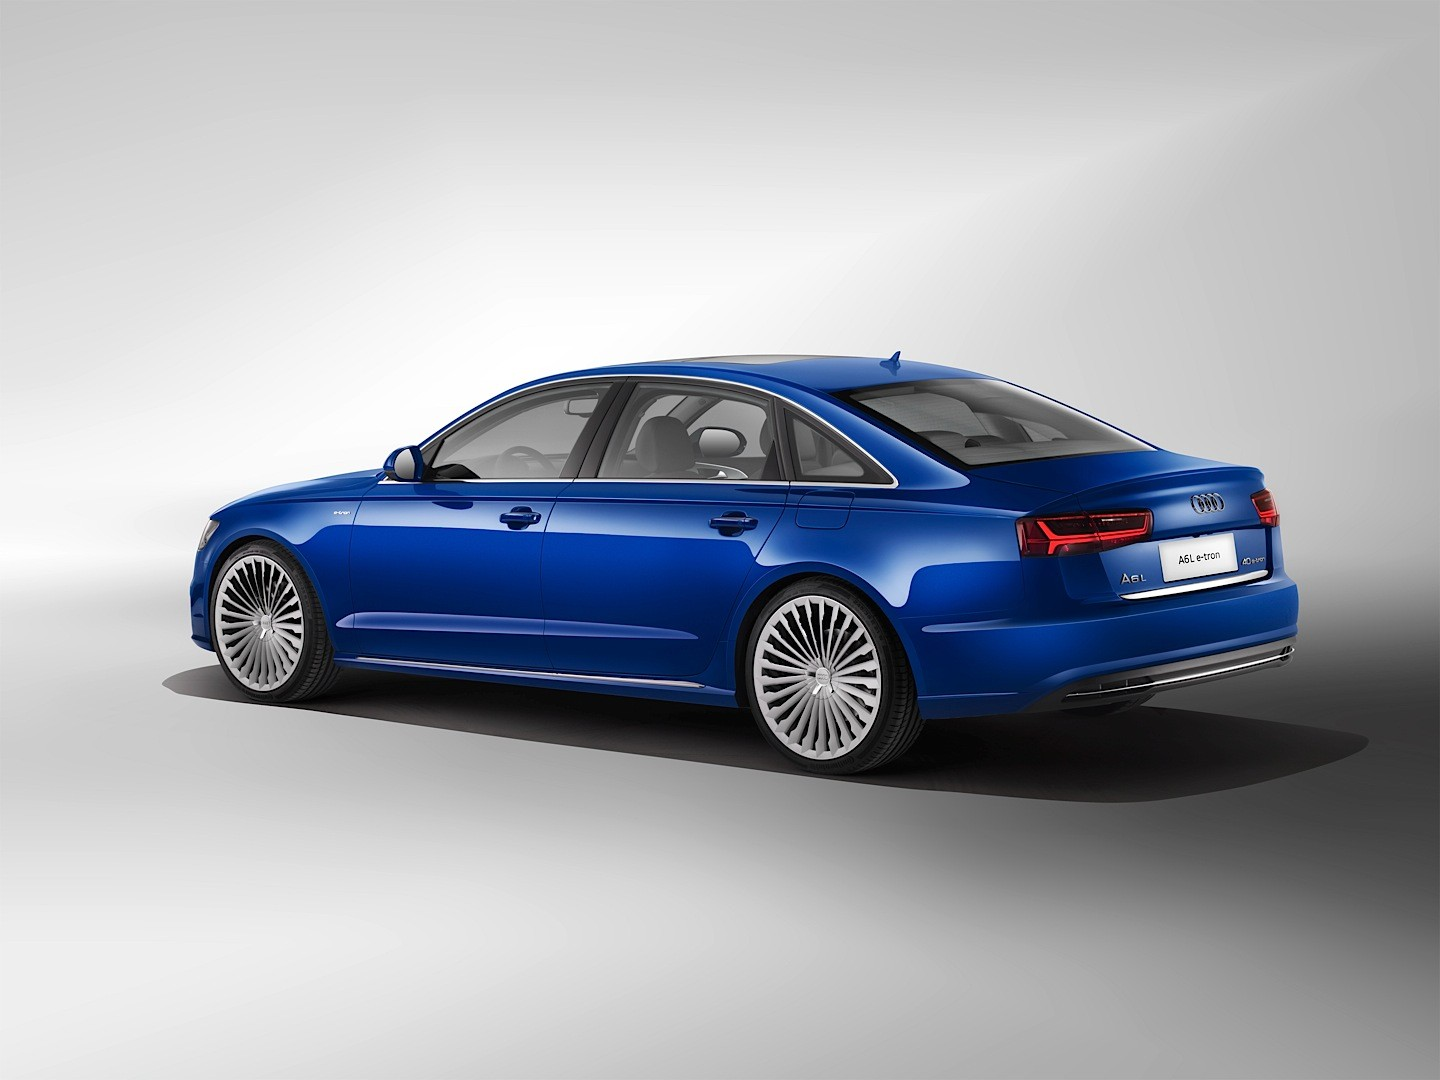 audi unveils a6 l e tron with 245 hp and 880 km range in. Black Bedroom Furniture Sets. Home Design Ideas